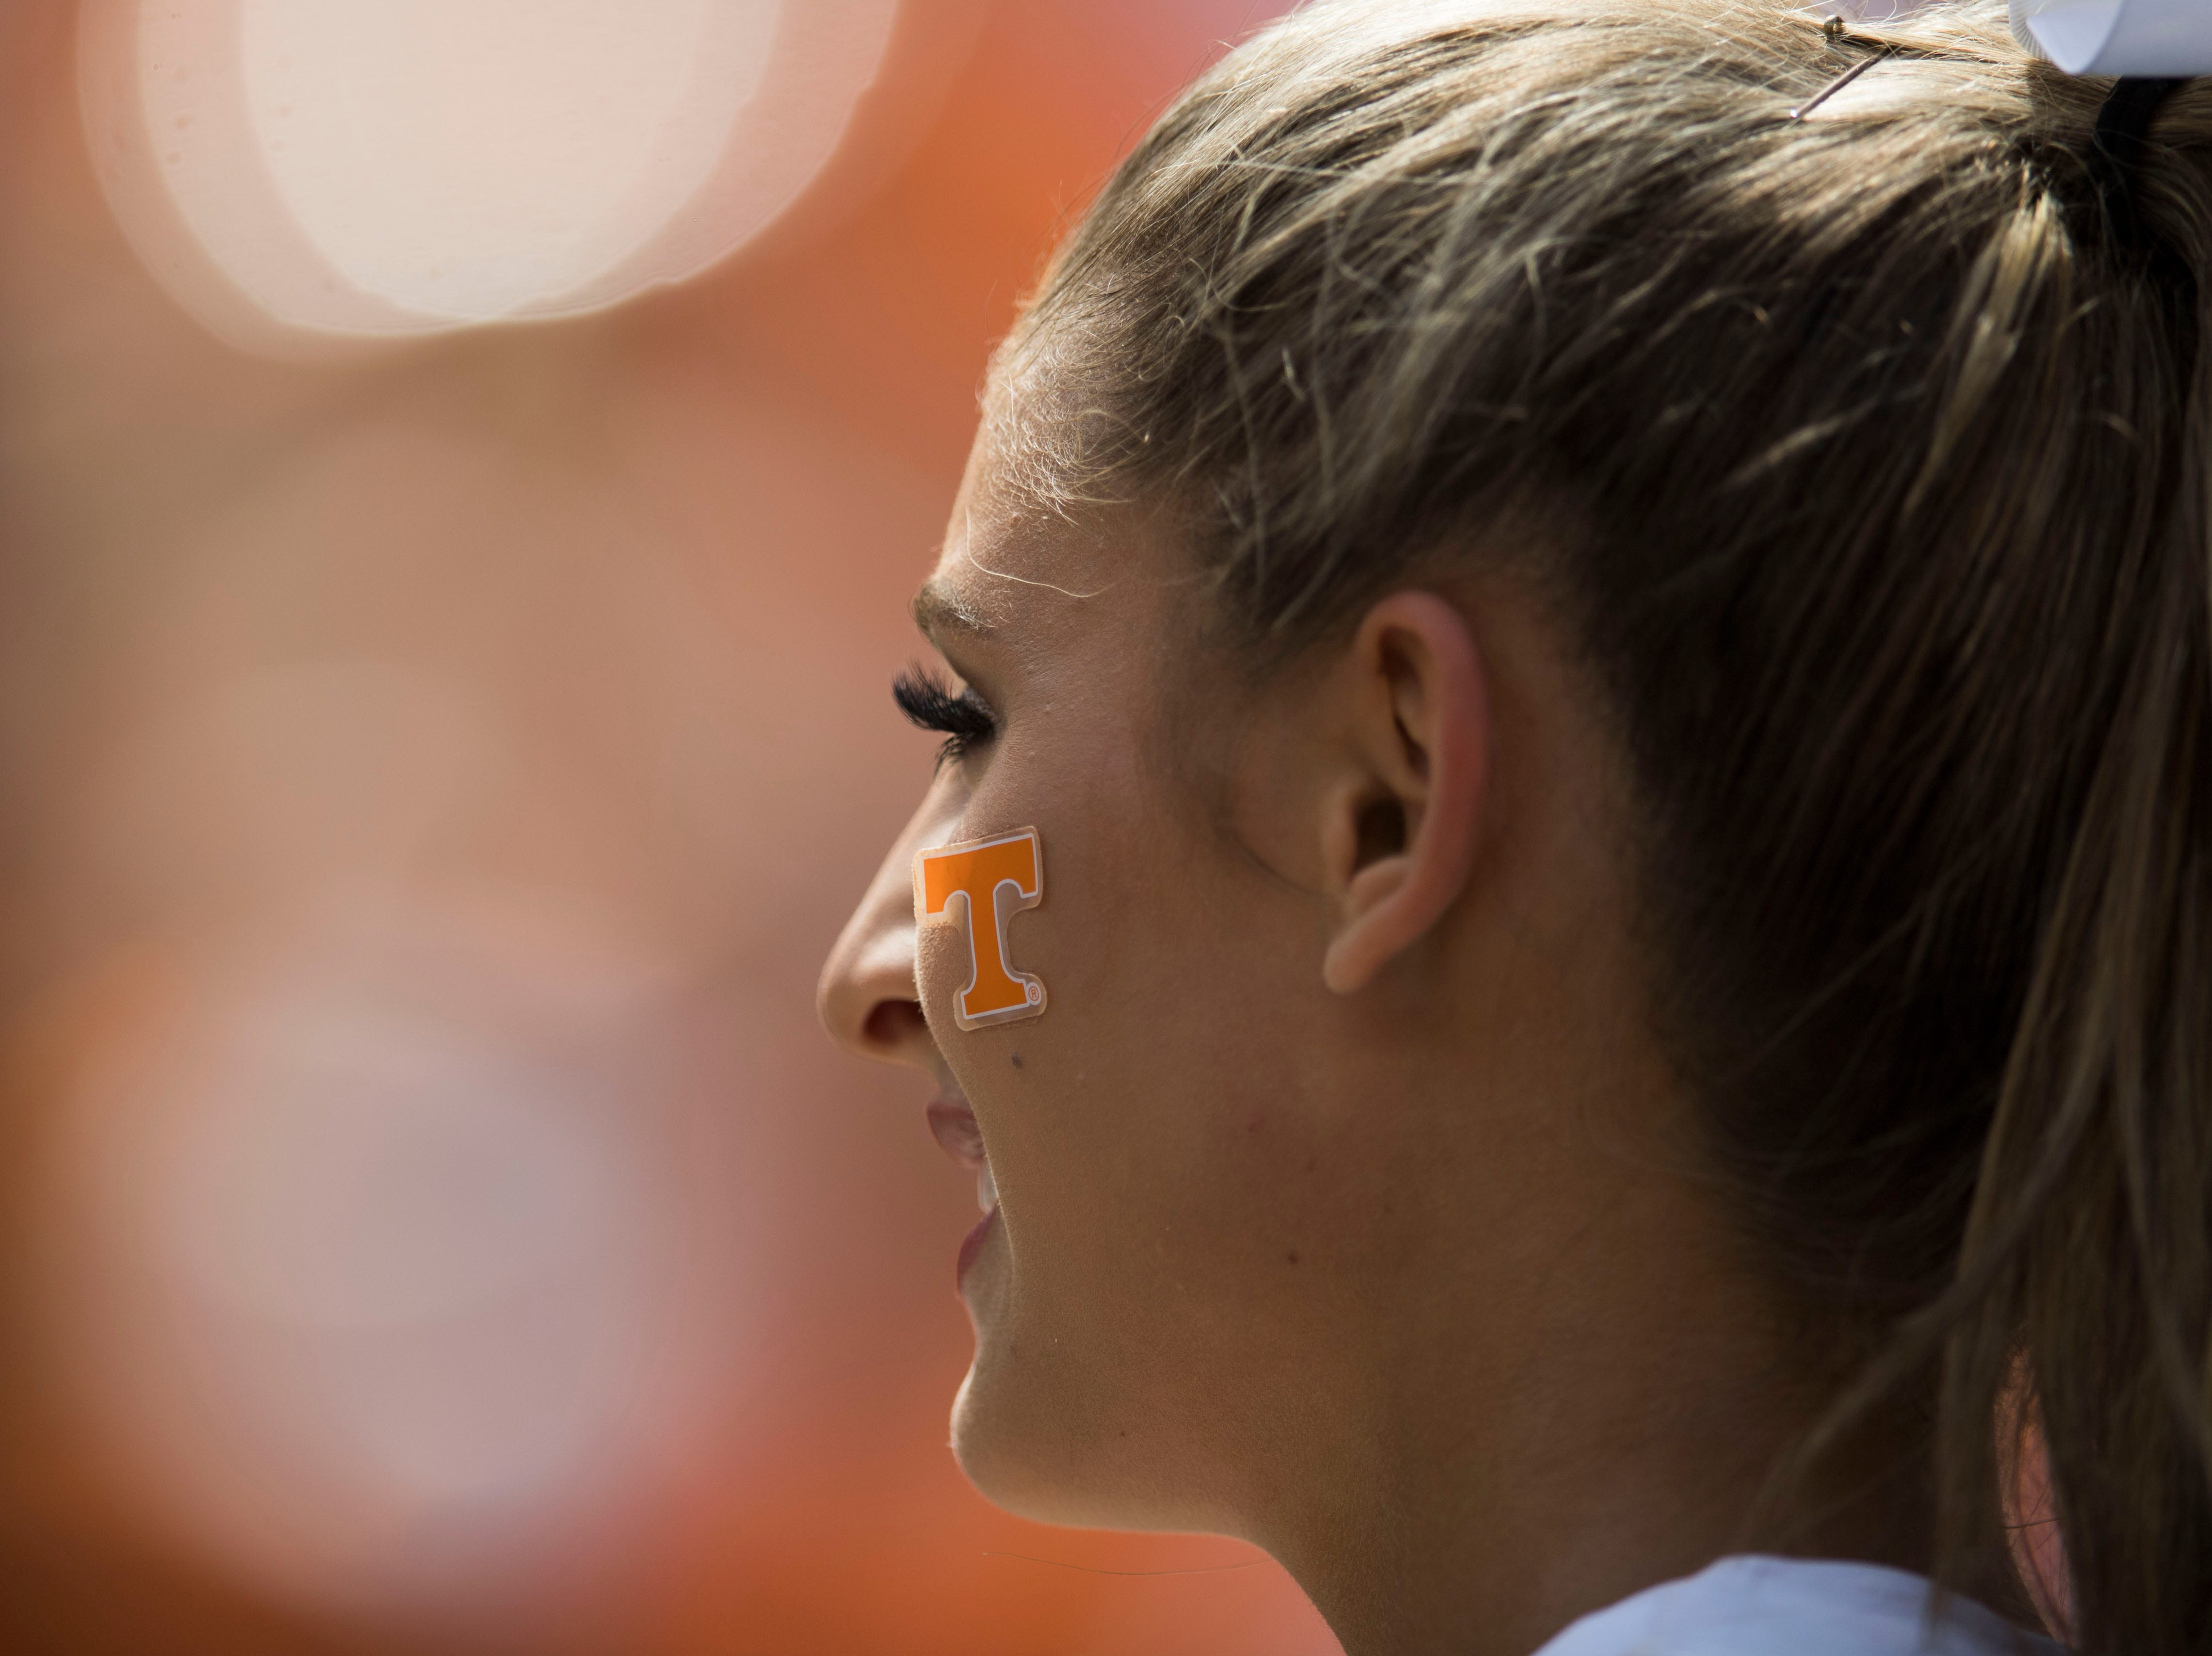 A UT cheerleader smiles during the second half of a game between UT and UTEP in Neyland Stadium Sept. 15, 2018.